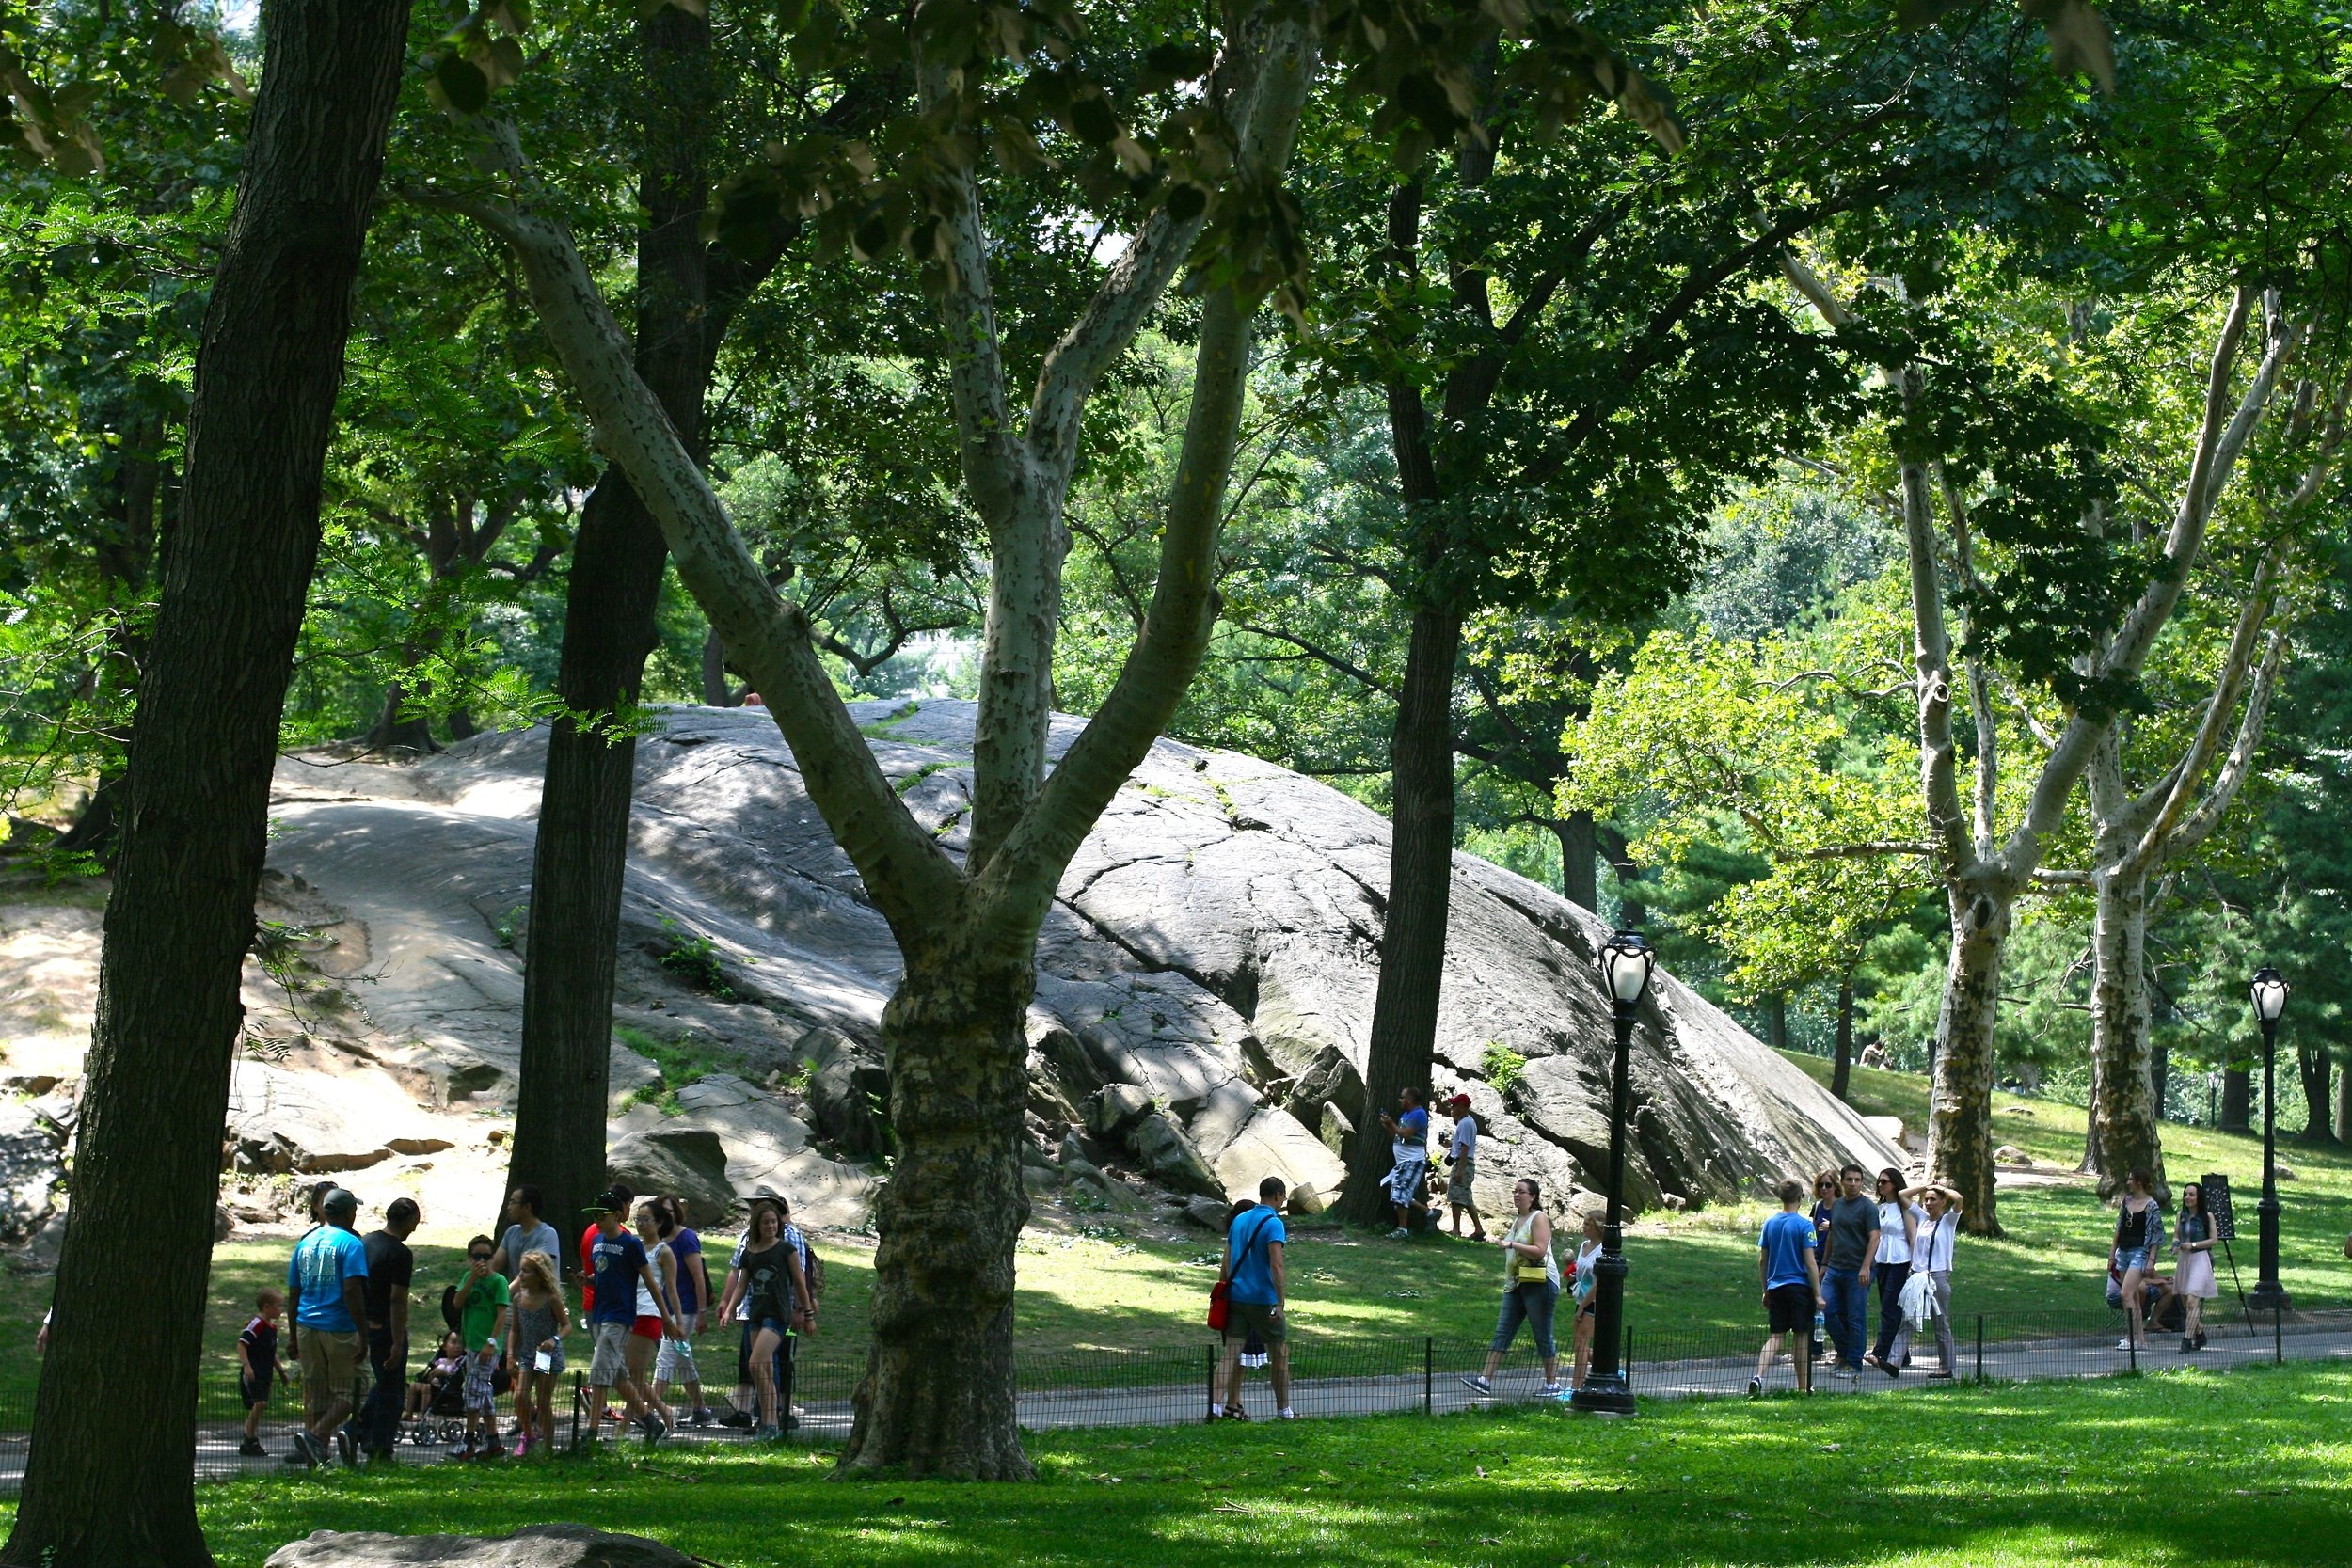 Summer in New York means the park is always packed with ecstatic dogs and their multitudes of humans.